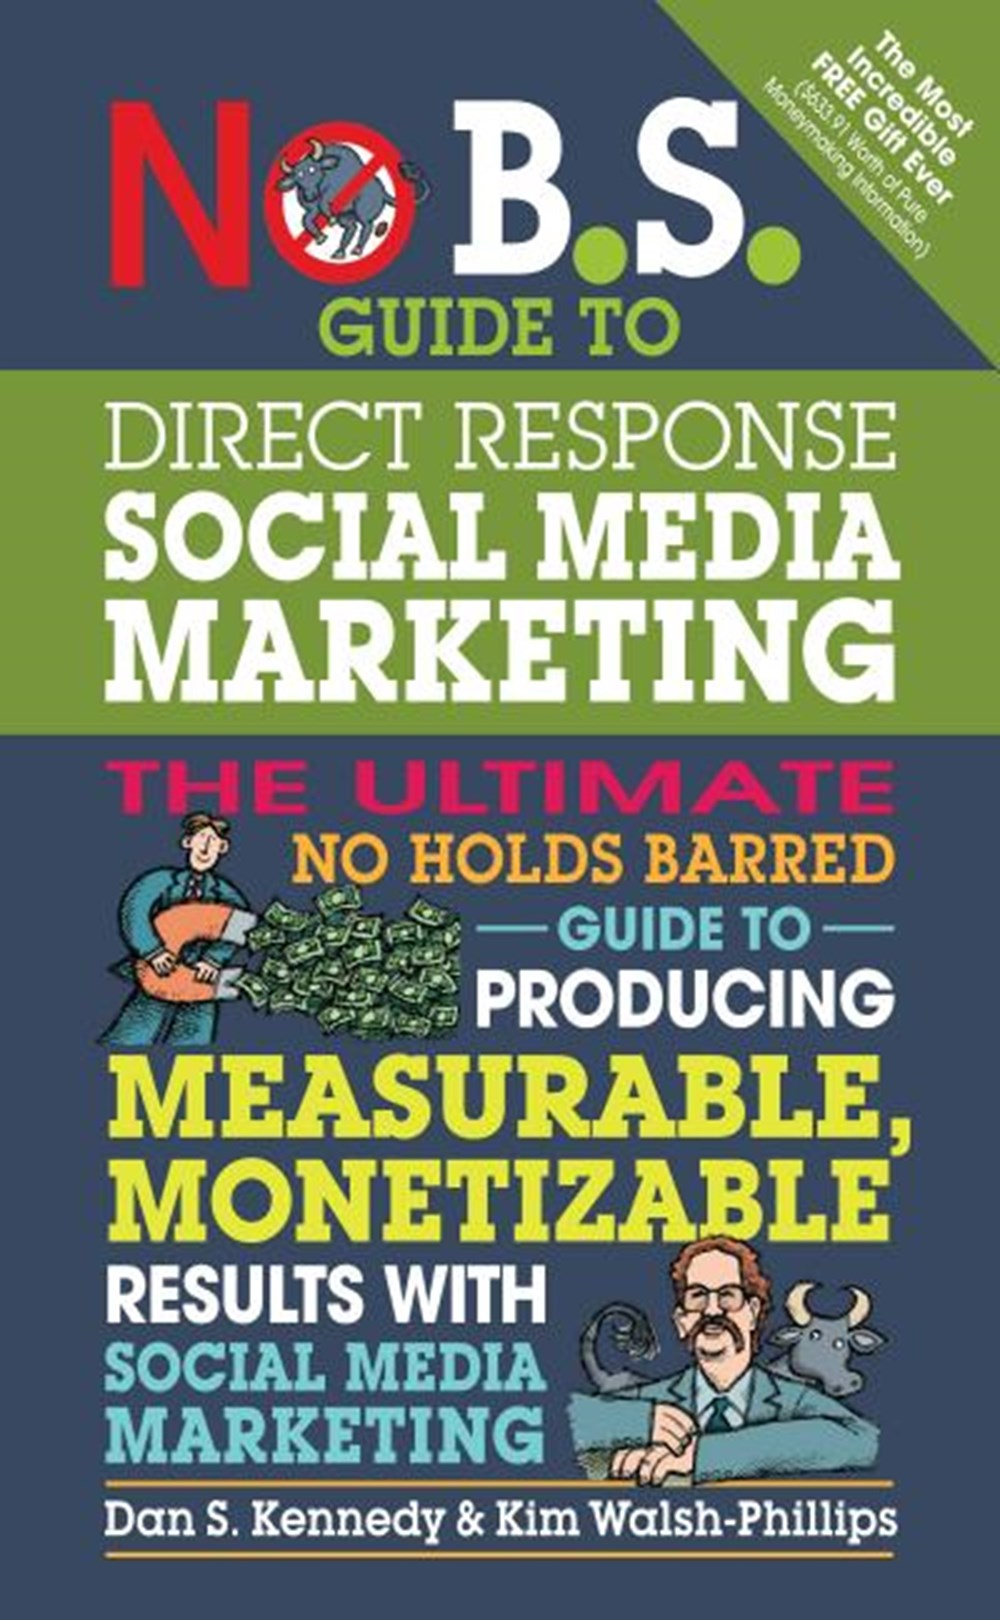 No B.S. Guide to Direct Response Social Media Marketing: The Ultimate No Holds Barred Guide to Produ